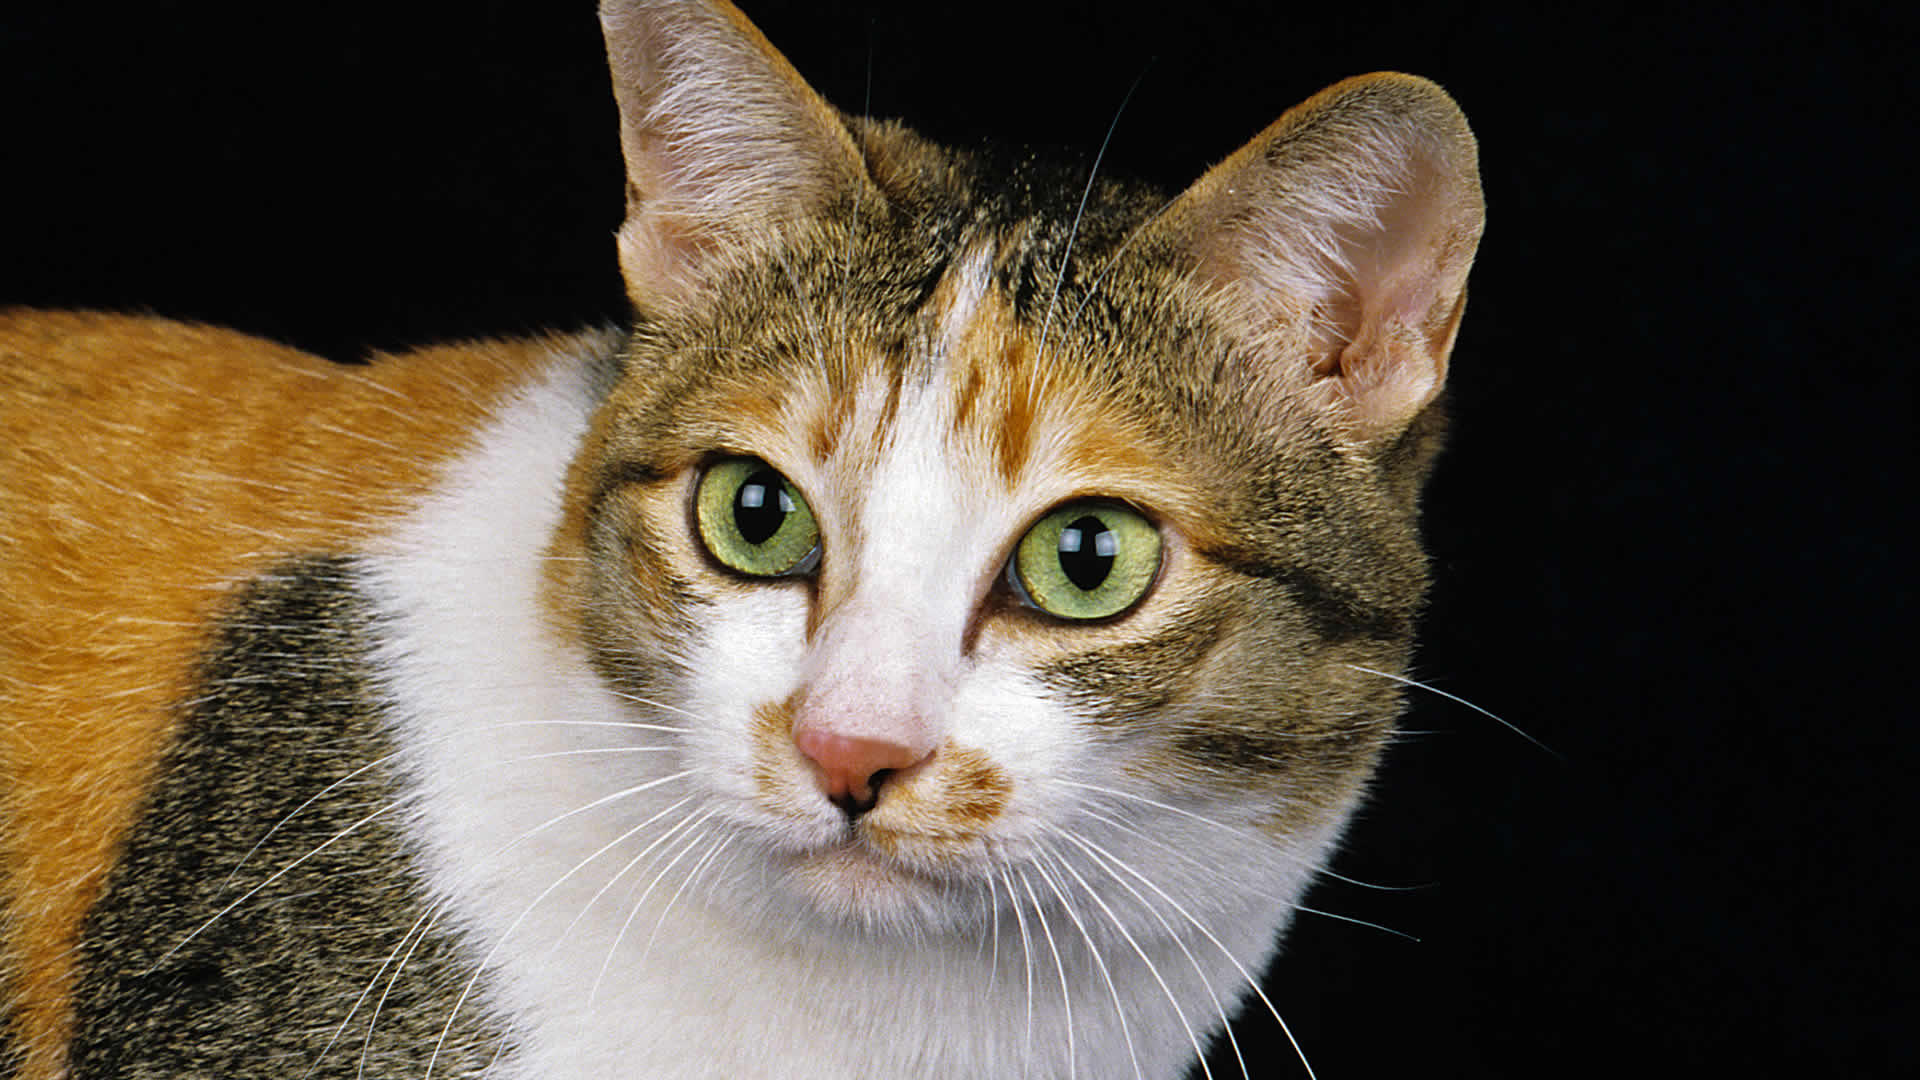 Japanese Bobtail breed is another that cat with yellow eyes that are large, round, and stand-out